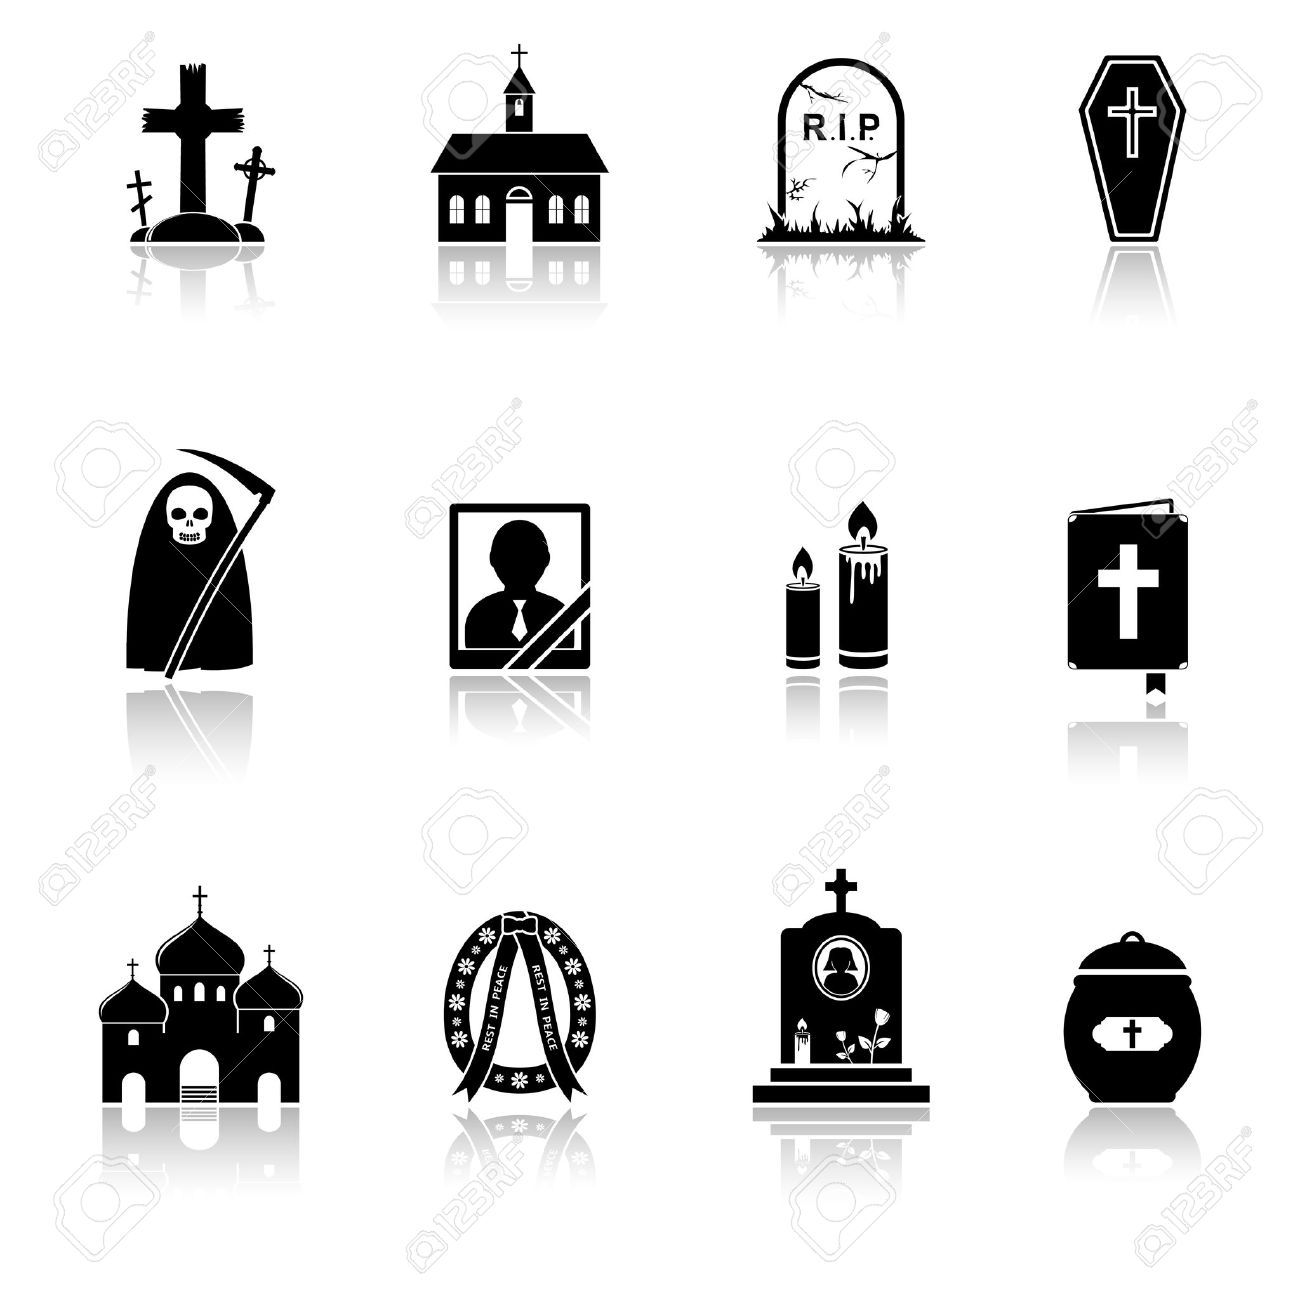 616 Funeral Flowers Stock Illustrations, Cliparts And Royalty Free.